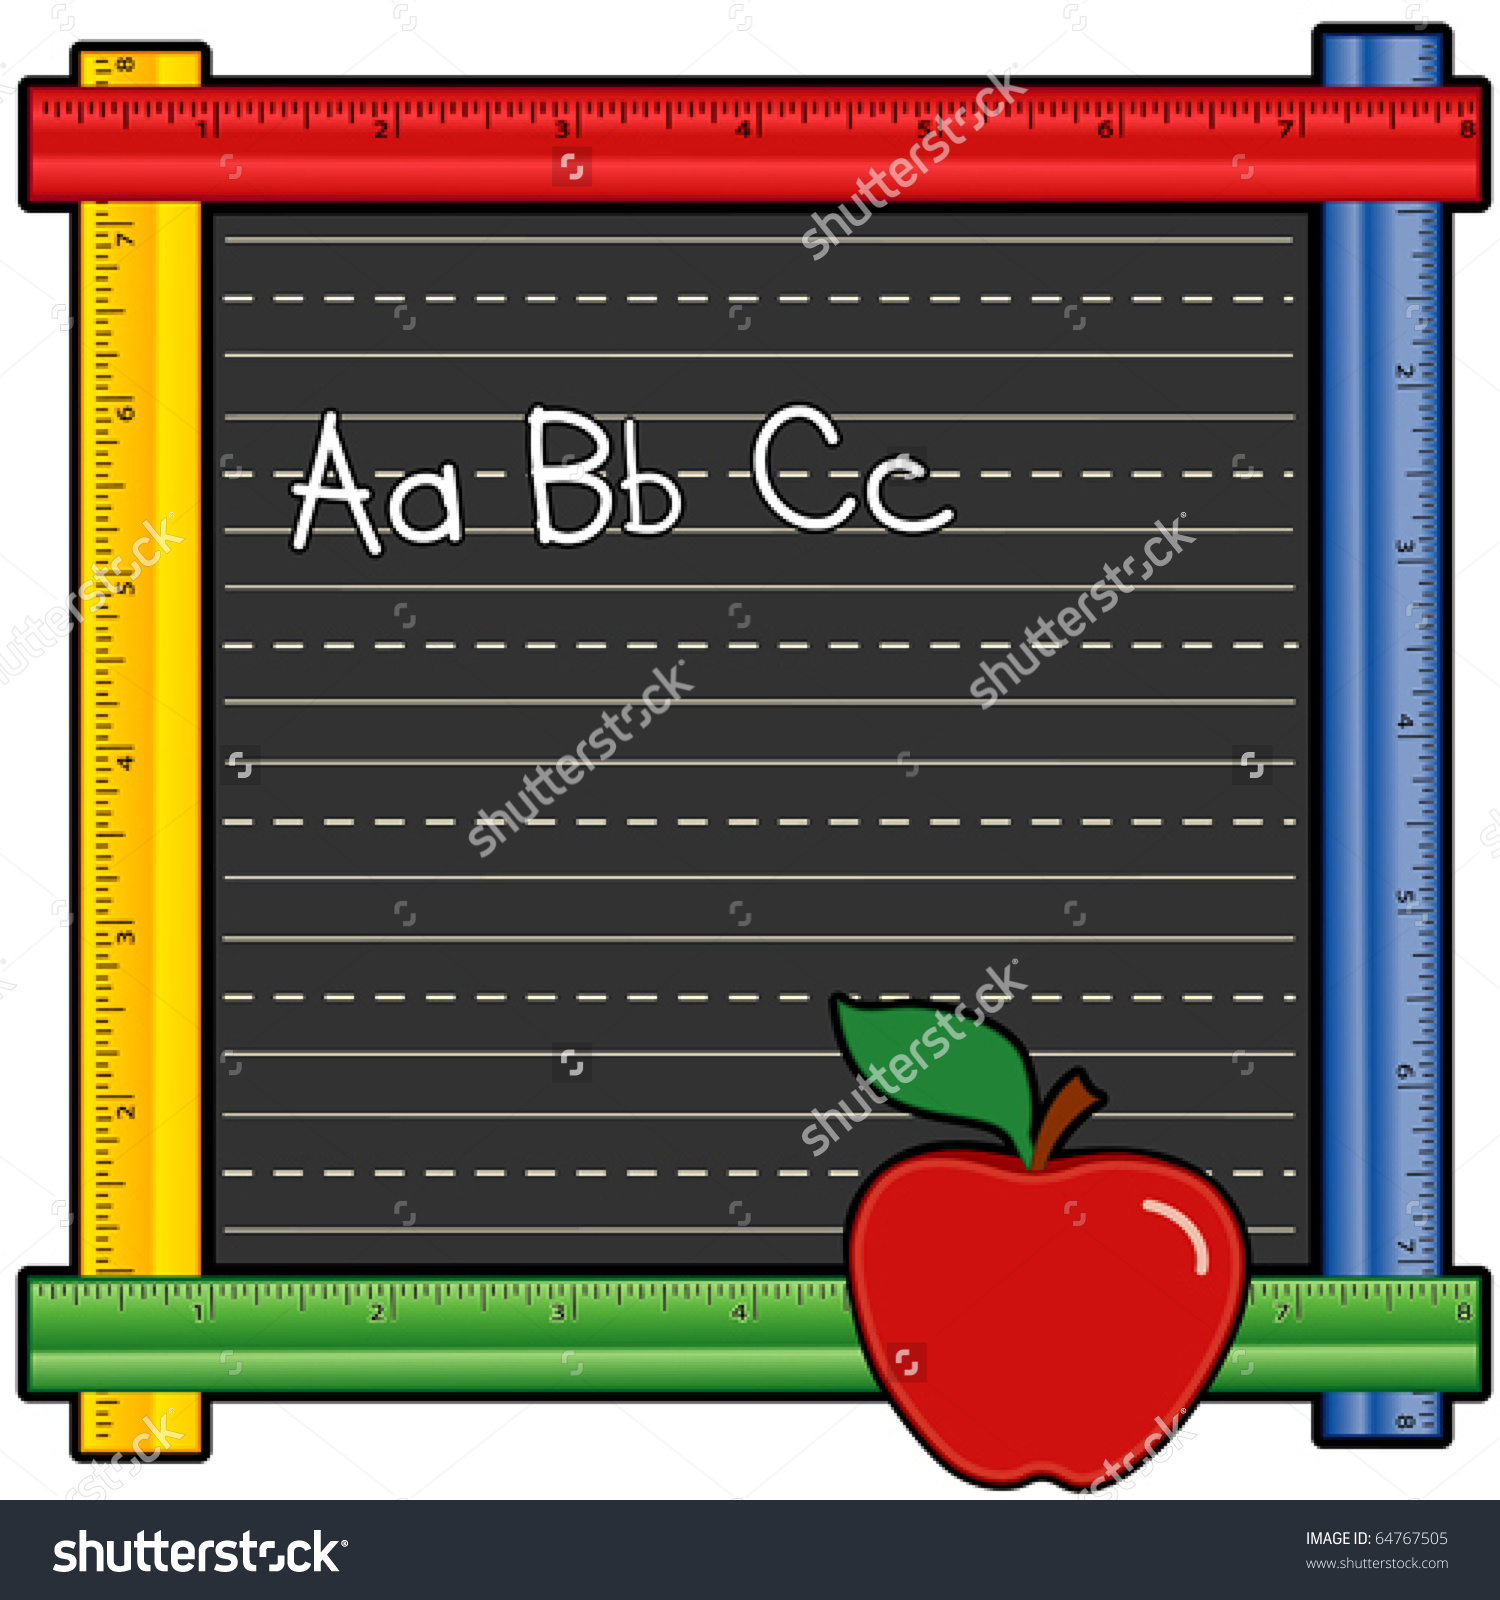 Abc chalkboard clipart stock Ruler Frame Chalkboard Abc Chalk Writing Stock Vector 64767505 ... stock